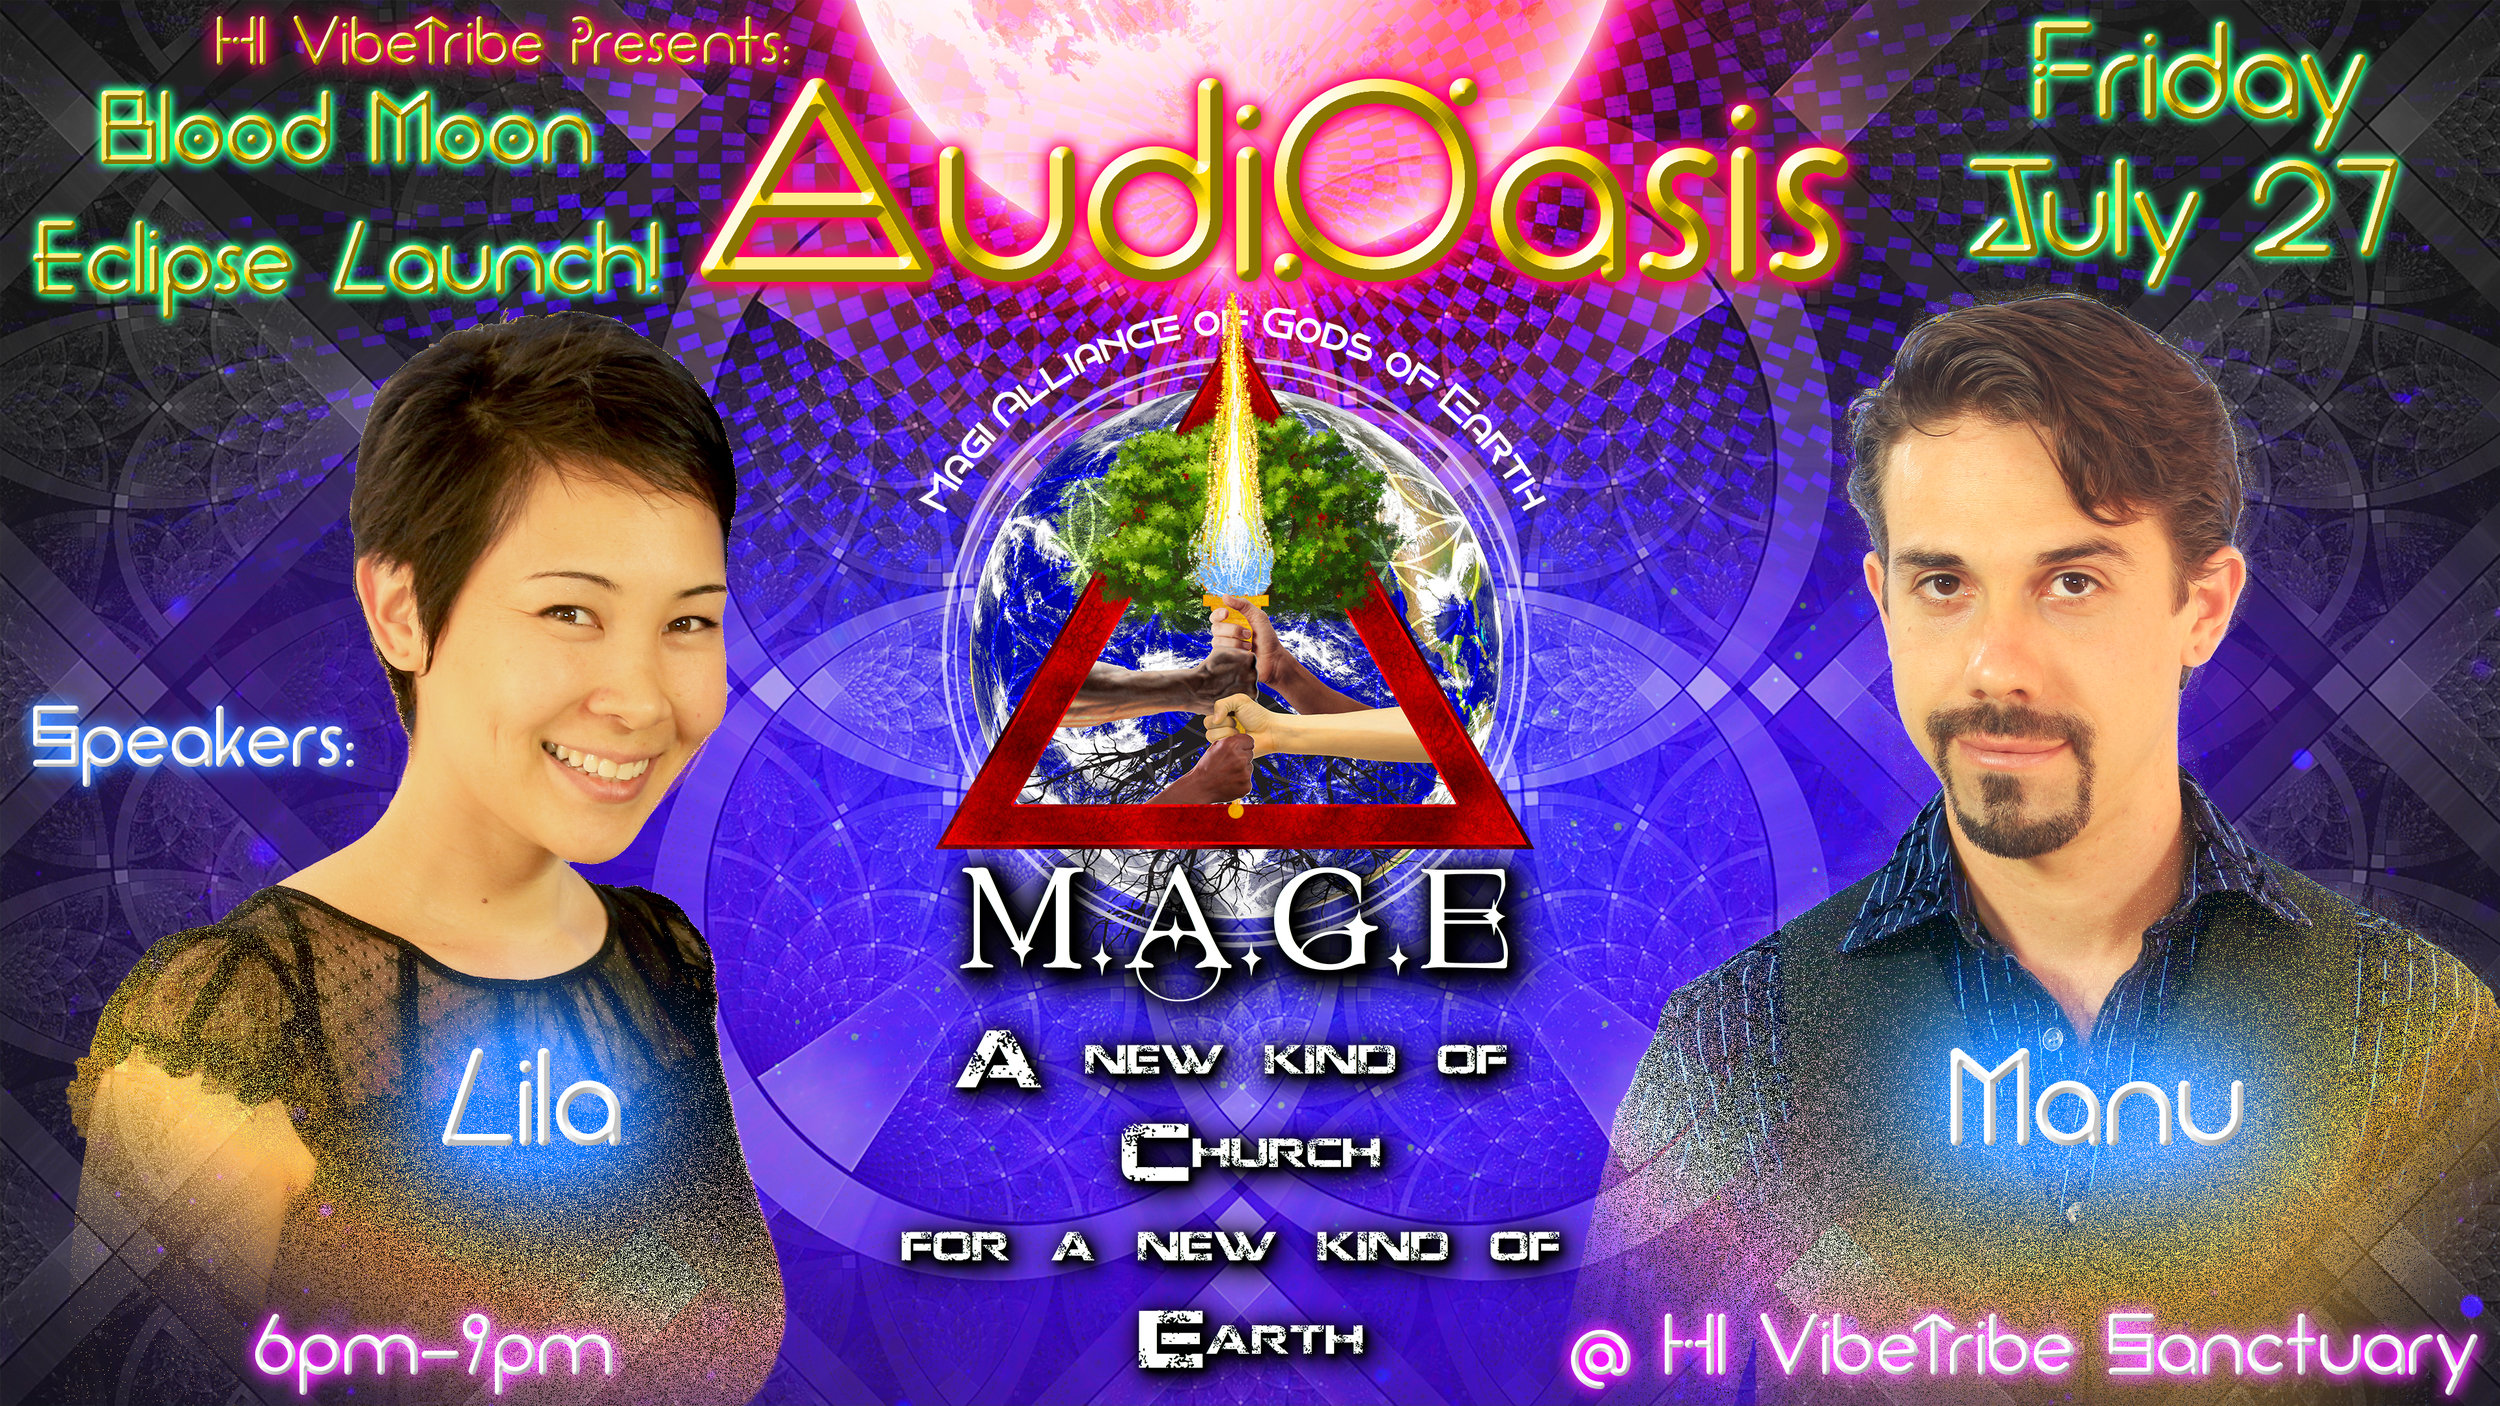 Audioasis flyer.jpg